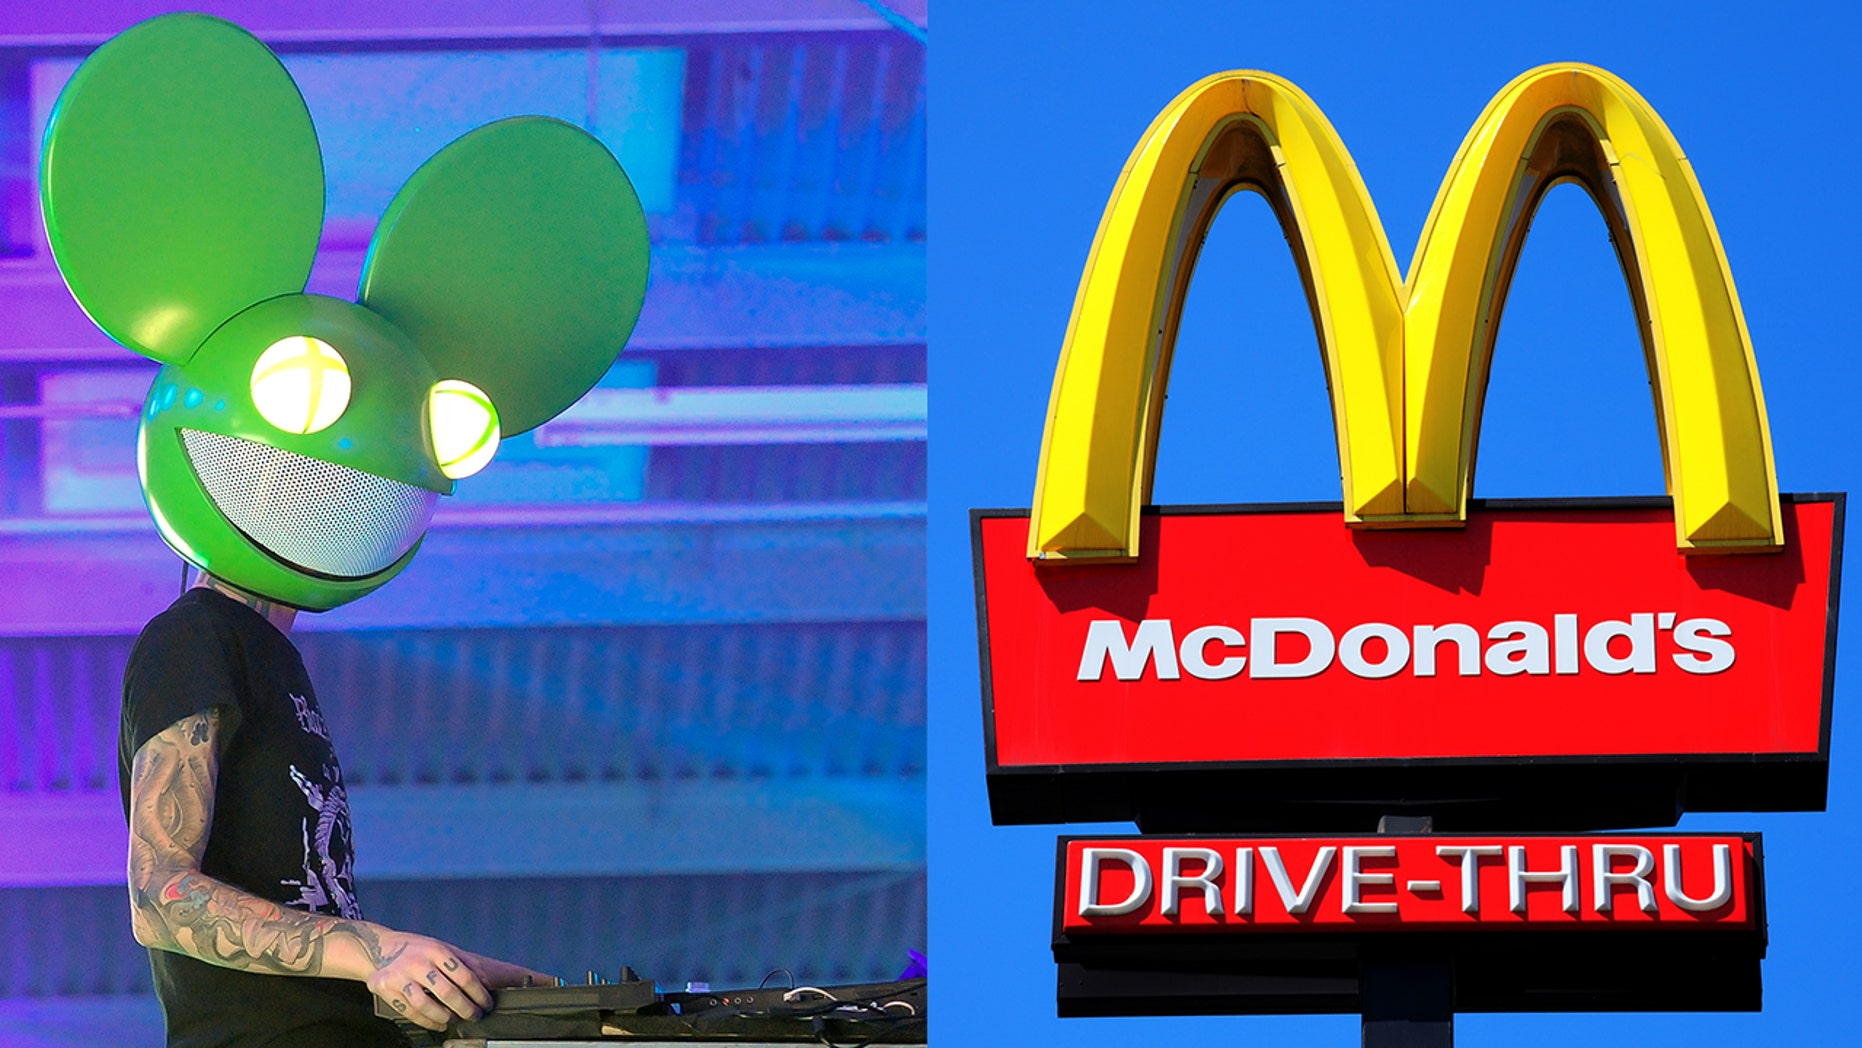 Deadmau5 gifted concertgoers with some of his rare McDonald's Szechuan sauce